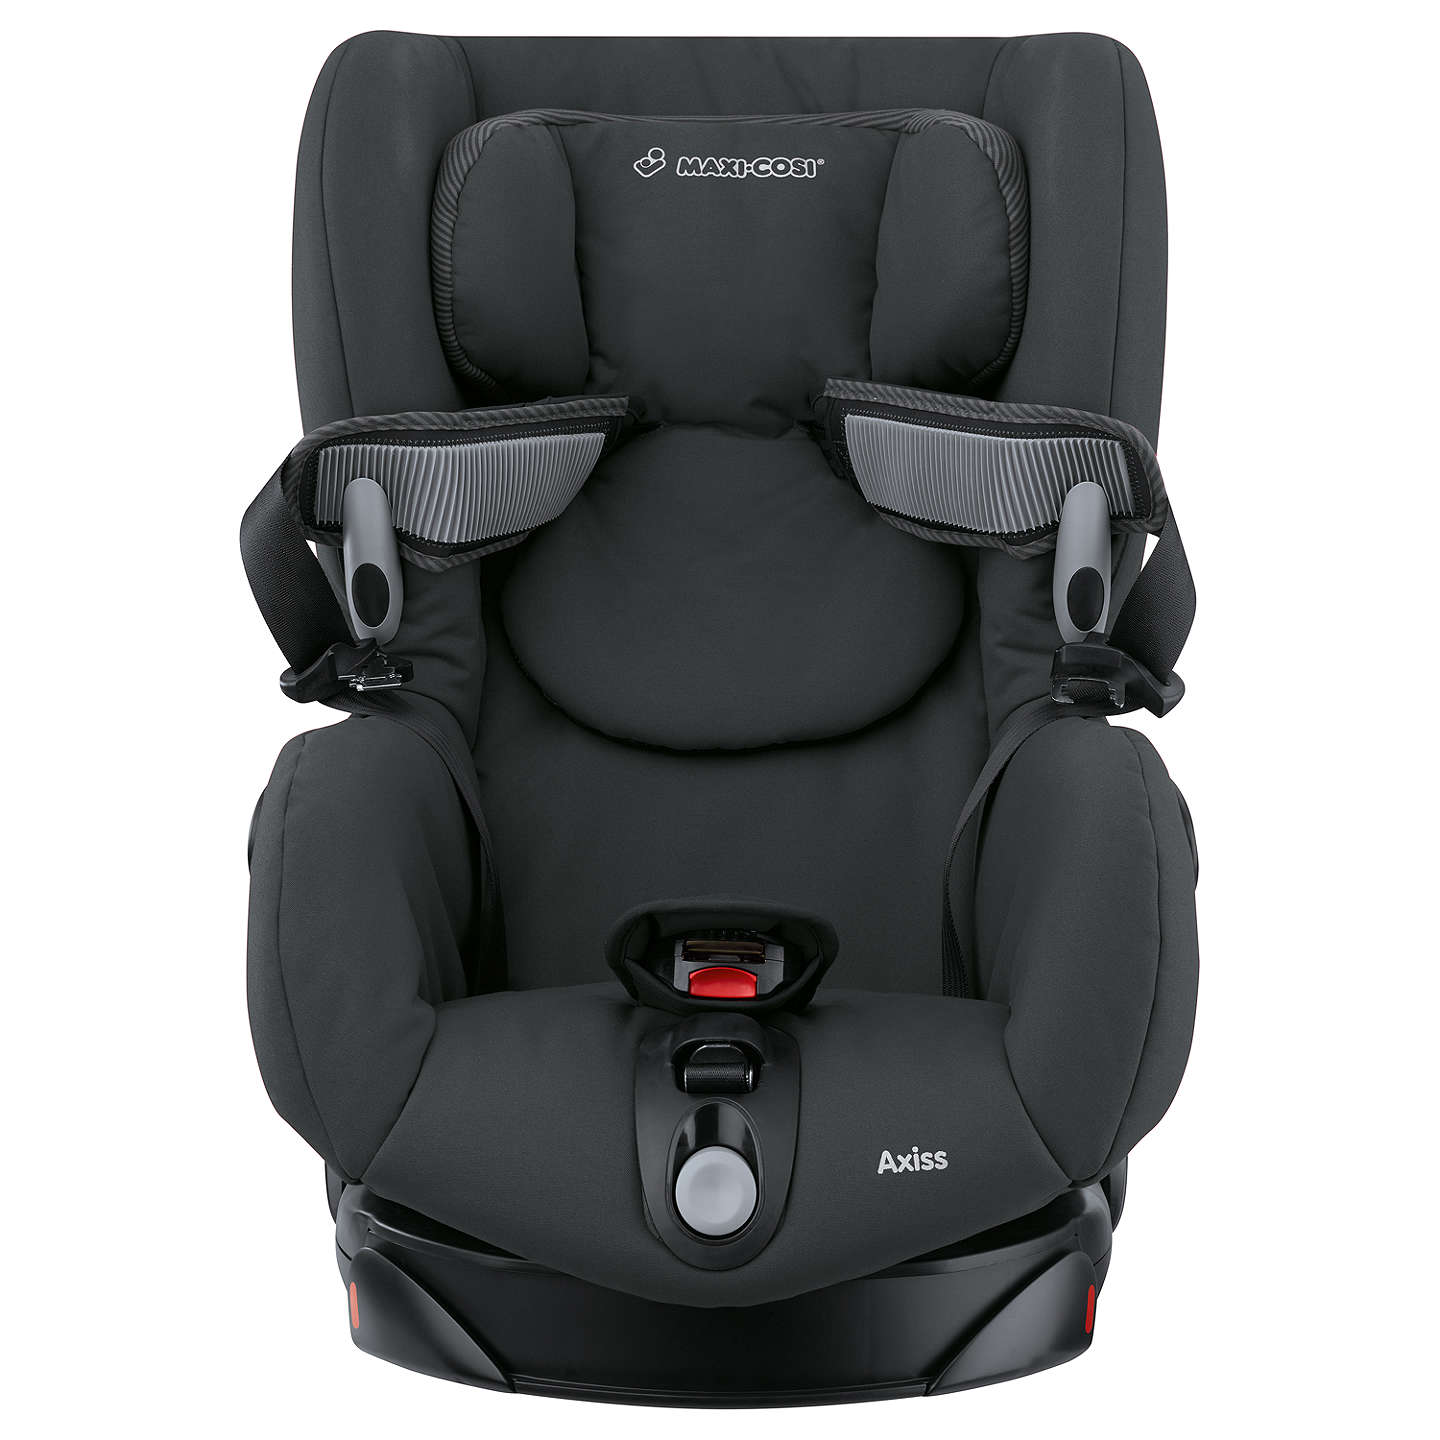 BuyMaxi-Cosi Axiss Group 1 Car Seat, Black Raven Online at johnlewis.com